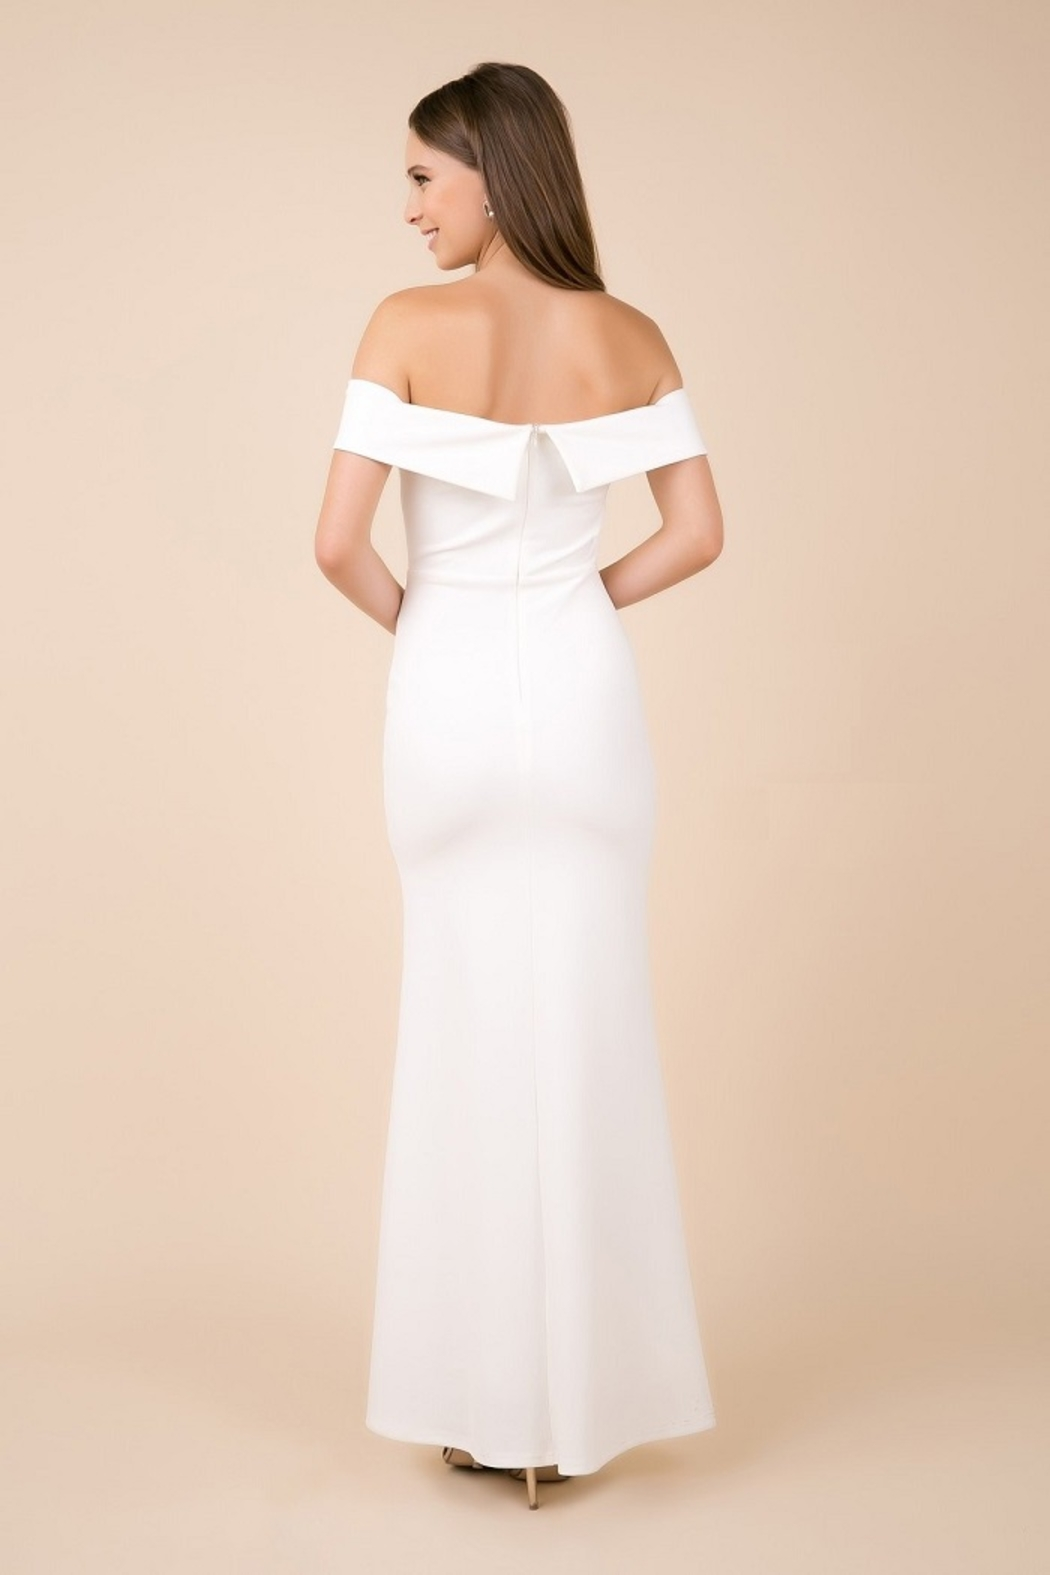 NOX A N A B E L White Off Shoulder Fit & Flare Bridal Gown - Front Full Image